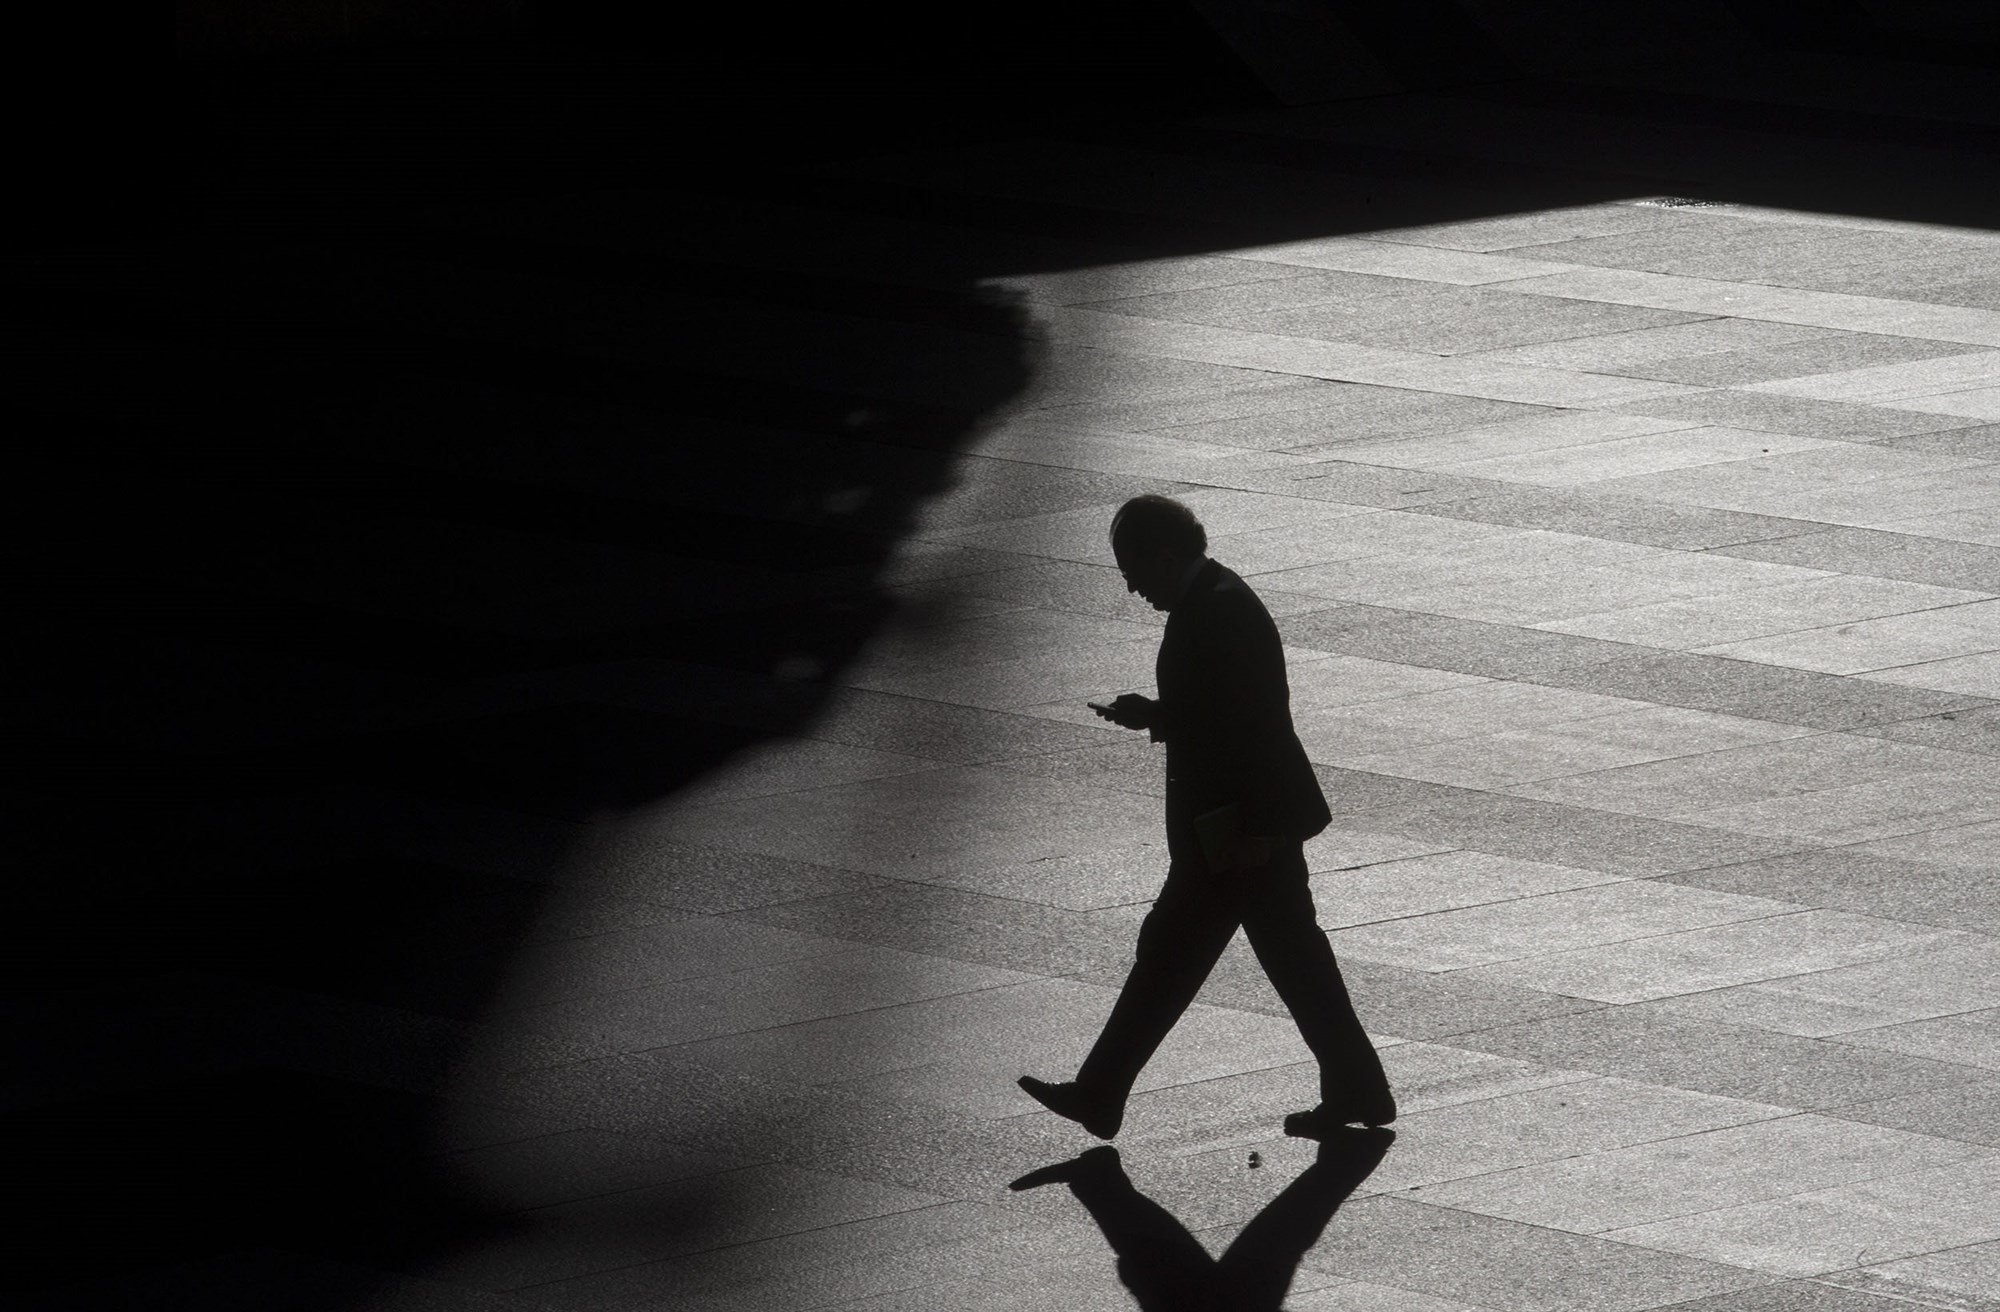 A man looks as his cell phone as he walks into the shadows in a business district. (Paul White / AP file)